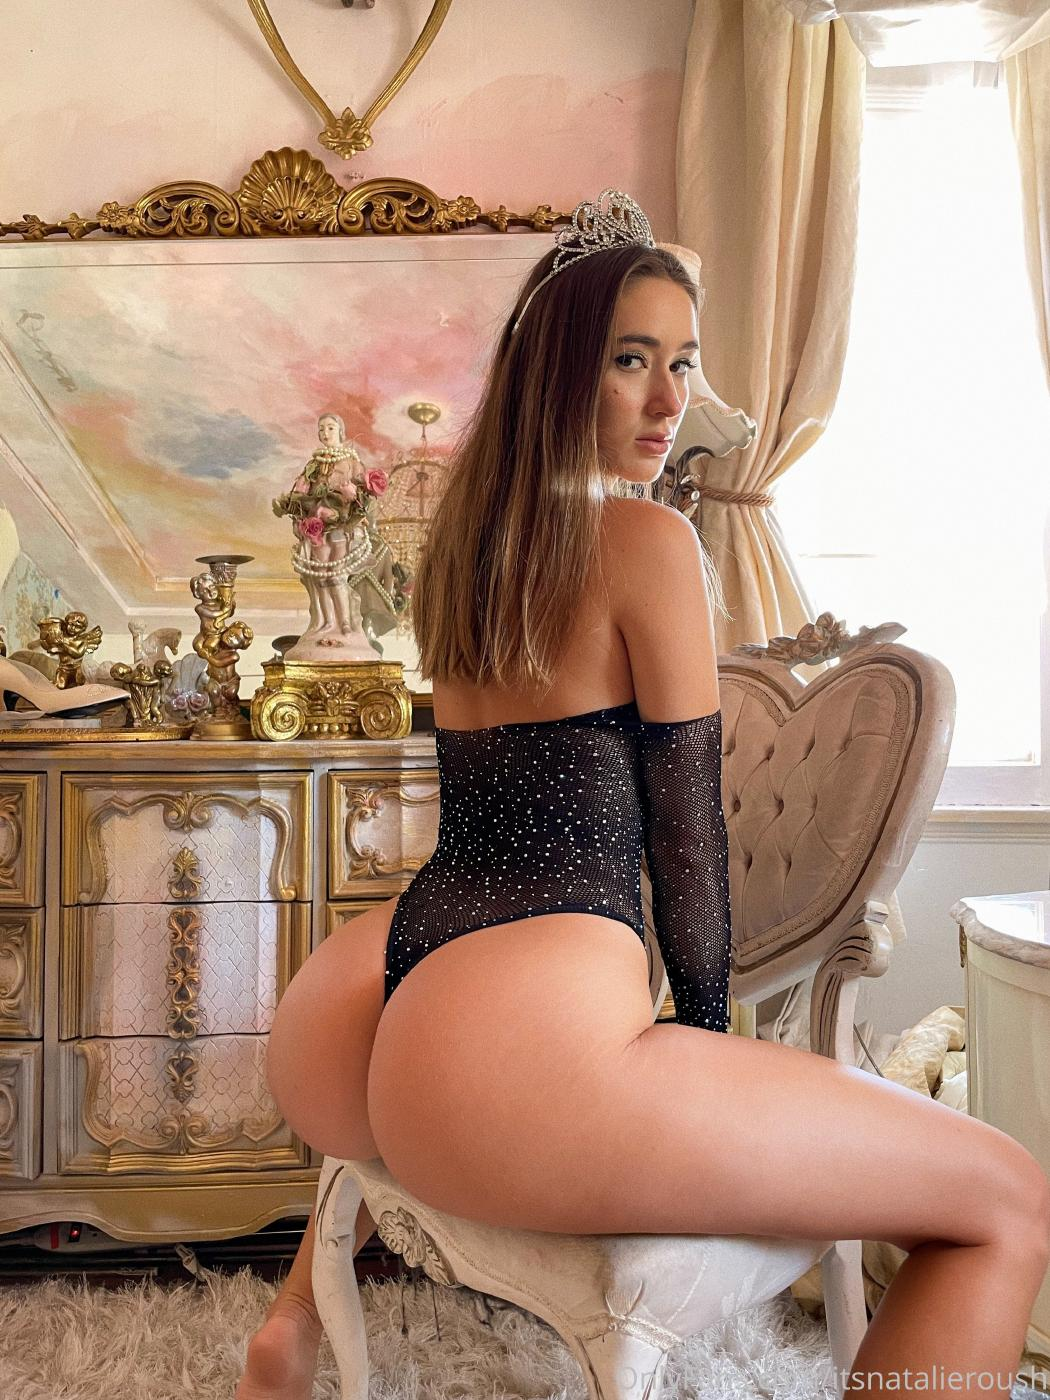 Natalie Roush Nude Fishnet Onlyfans Set Leaked Yrqccy